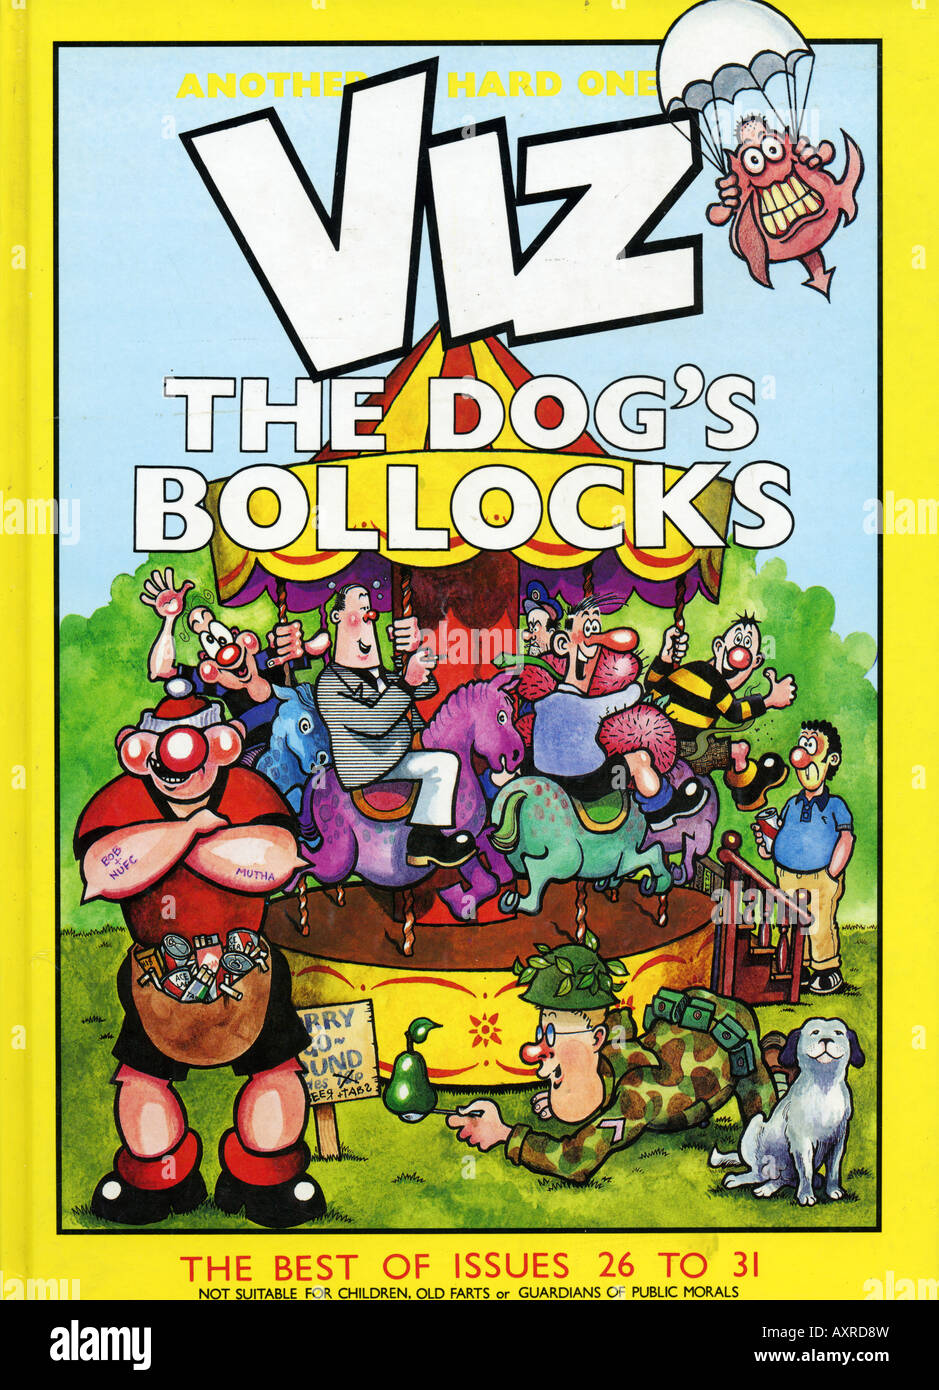 1980s 1989 Viz Comic Annual Issues 26 to 31 FOR EDITORIAL USE ONLY - Stock Image